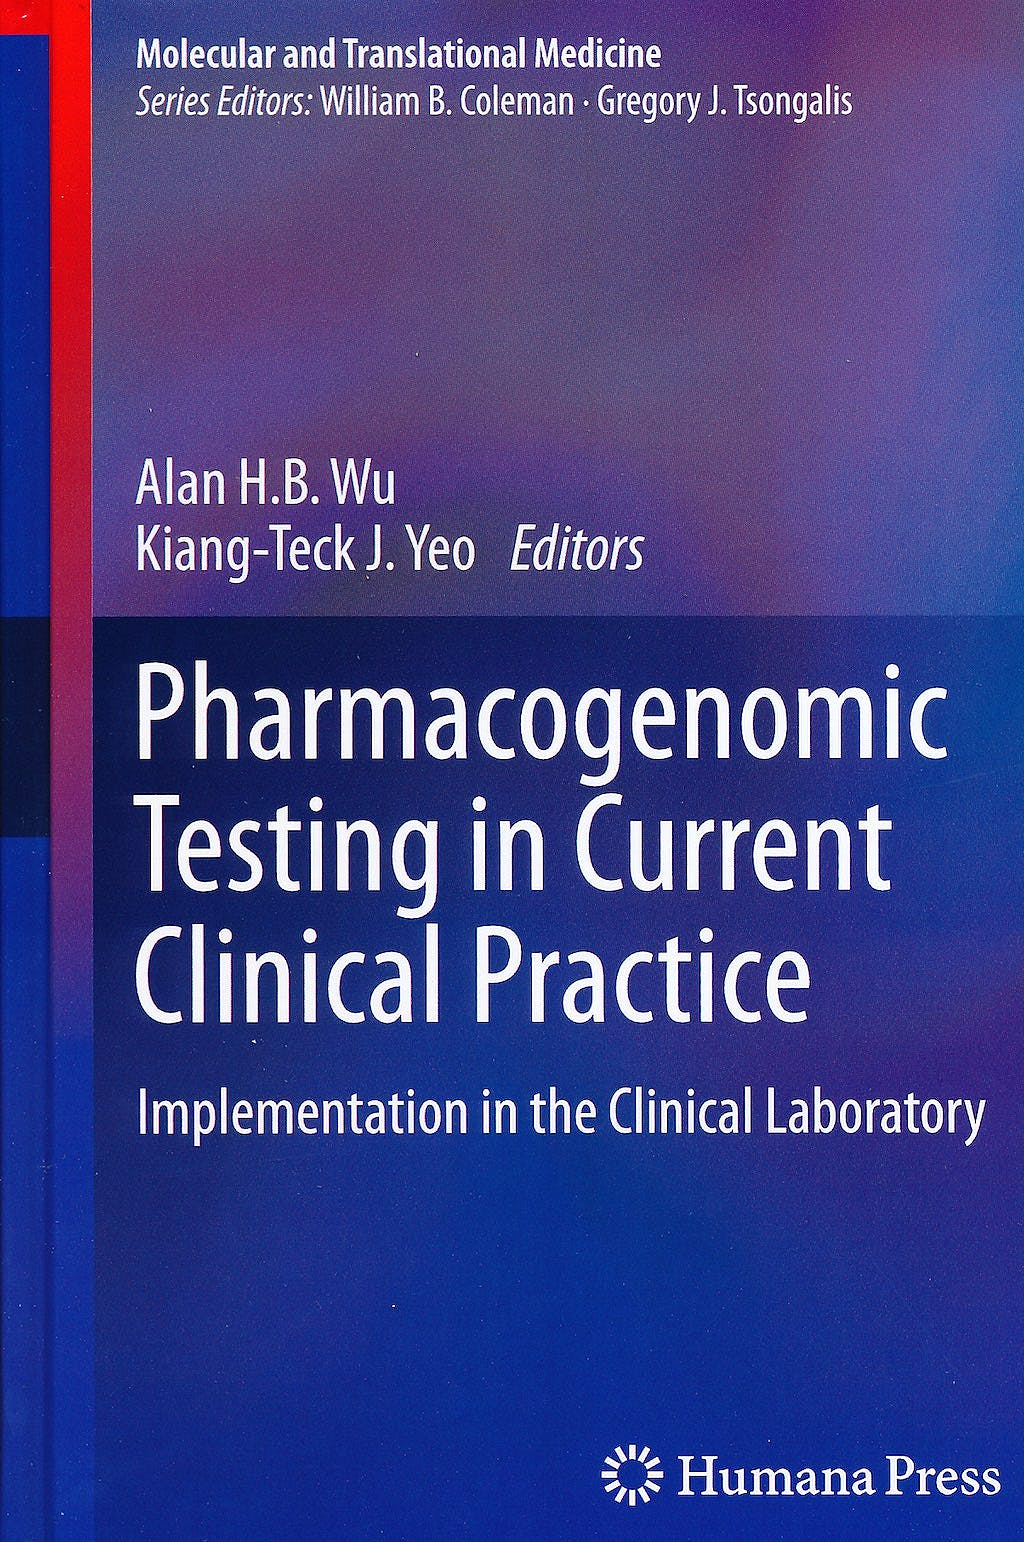 Portada del libro 9781607612827 Pharmacogenomic Testing in Current Clinical Practice. Implementation in the Clinical Laboratory (Molecular and Translational Medicine)